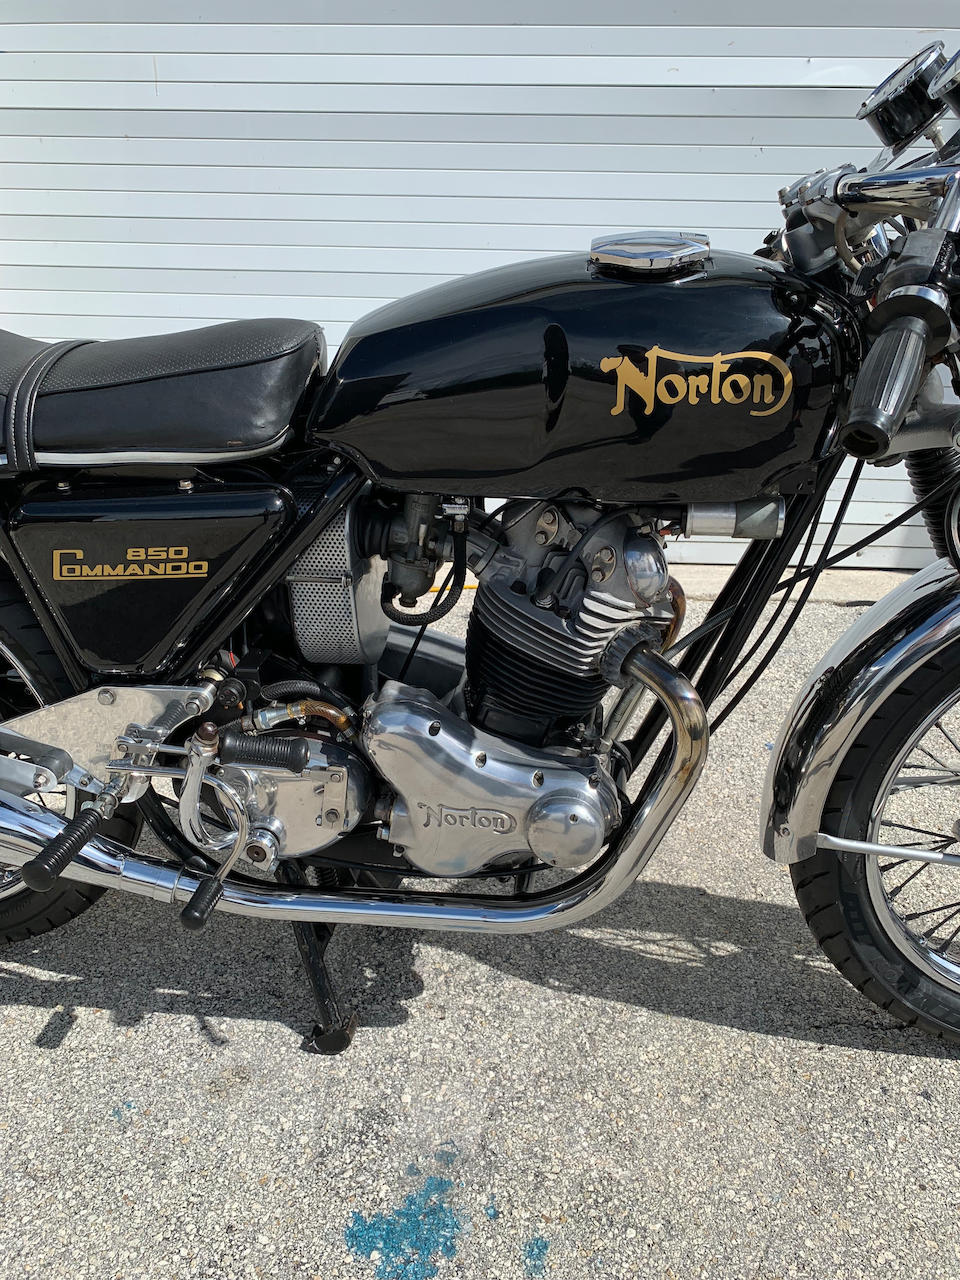 1973 Norton 850 Commando , Frame no. 301058 Engine no. 301058